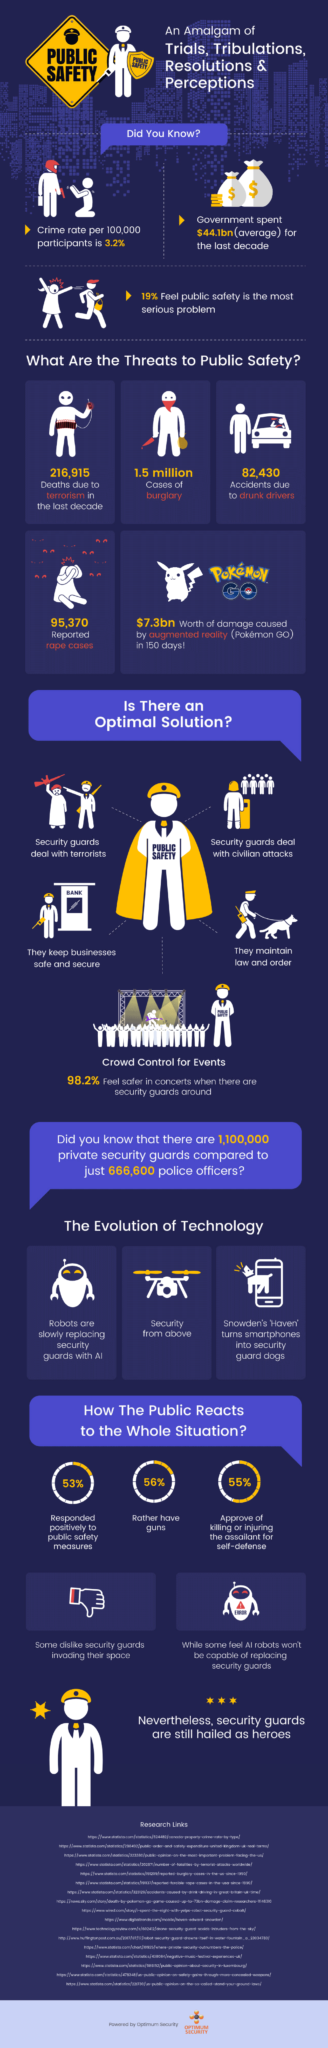 safety-in-numbers-infographic